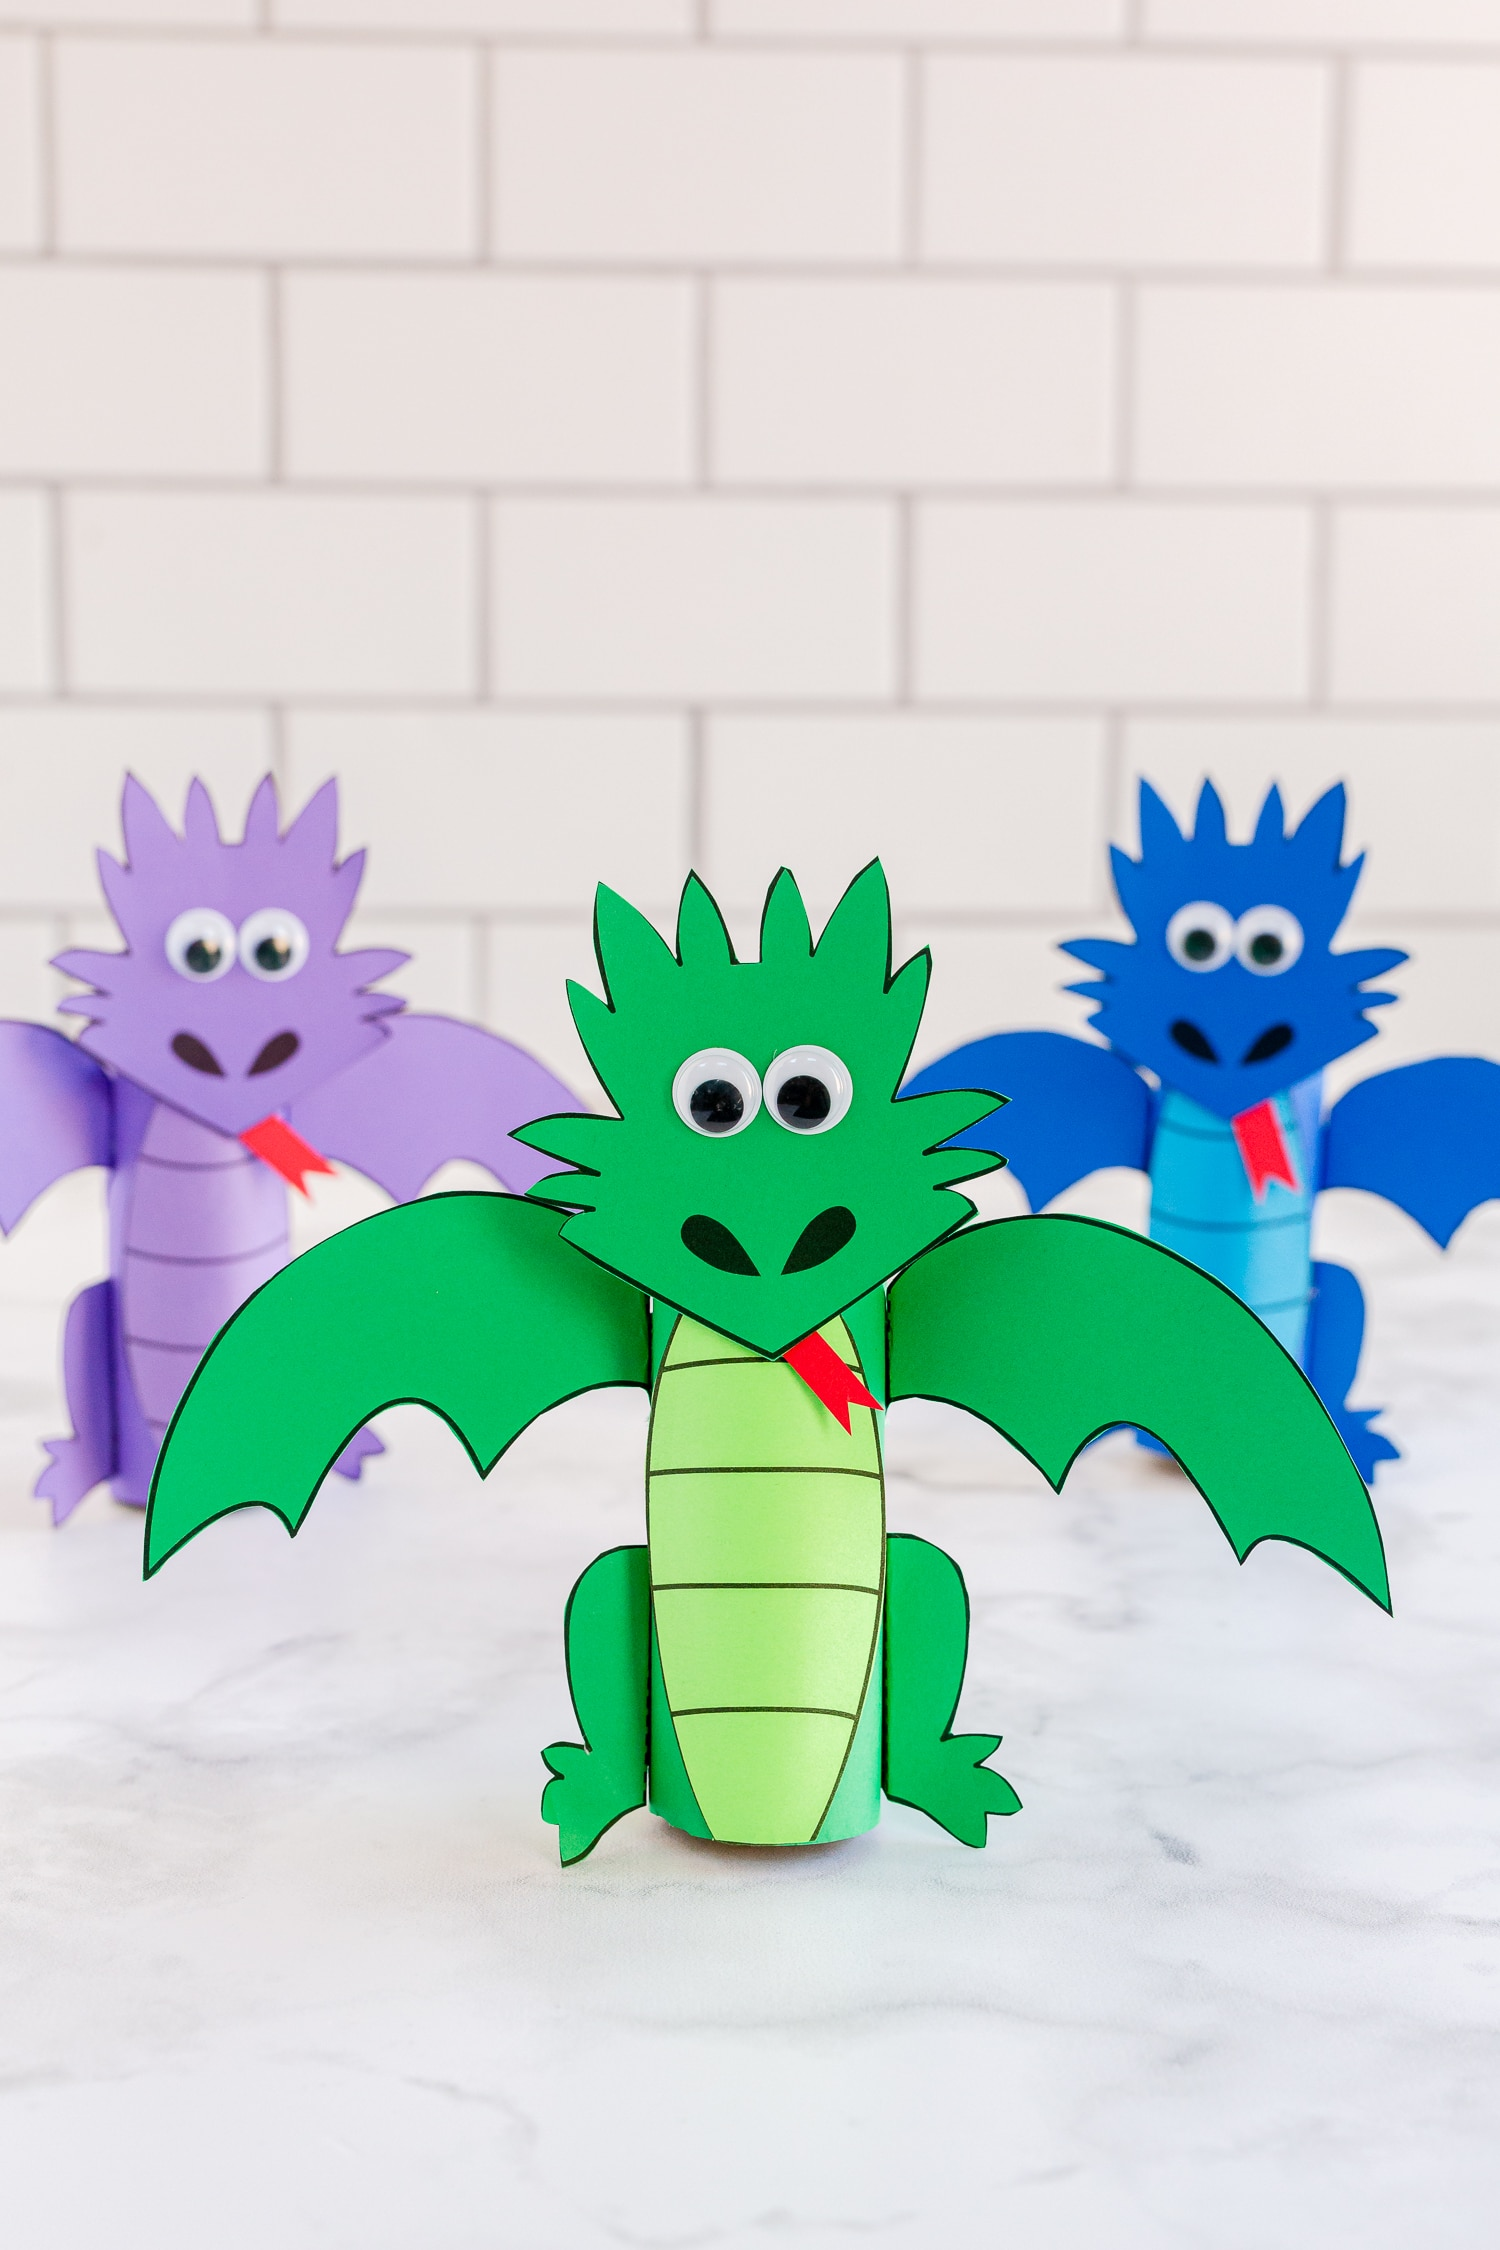 Toilet Paper Roll Dragons on counter- green, blue, and purple dragons